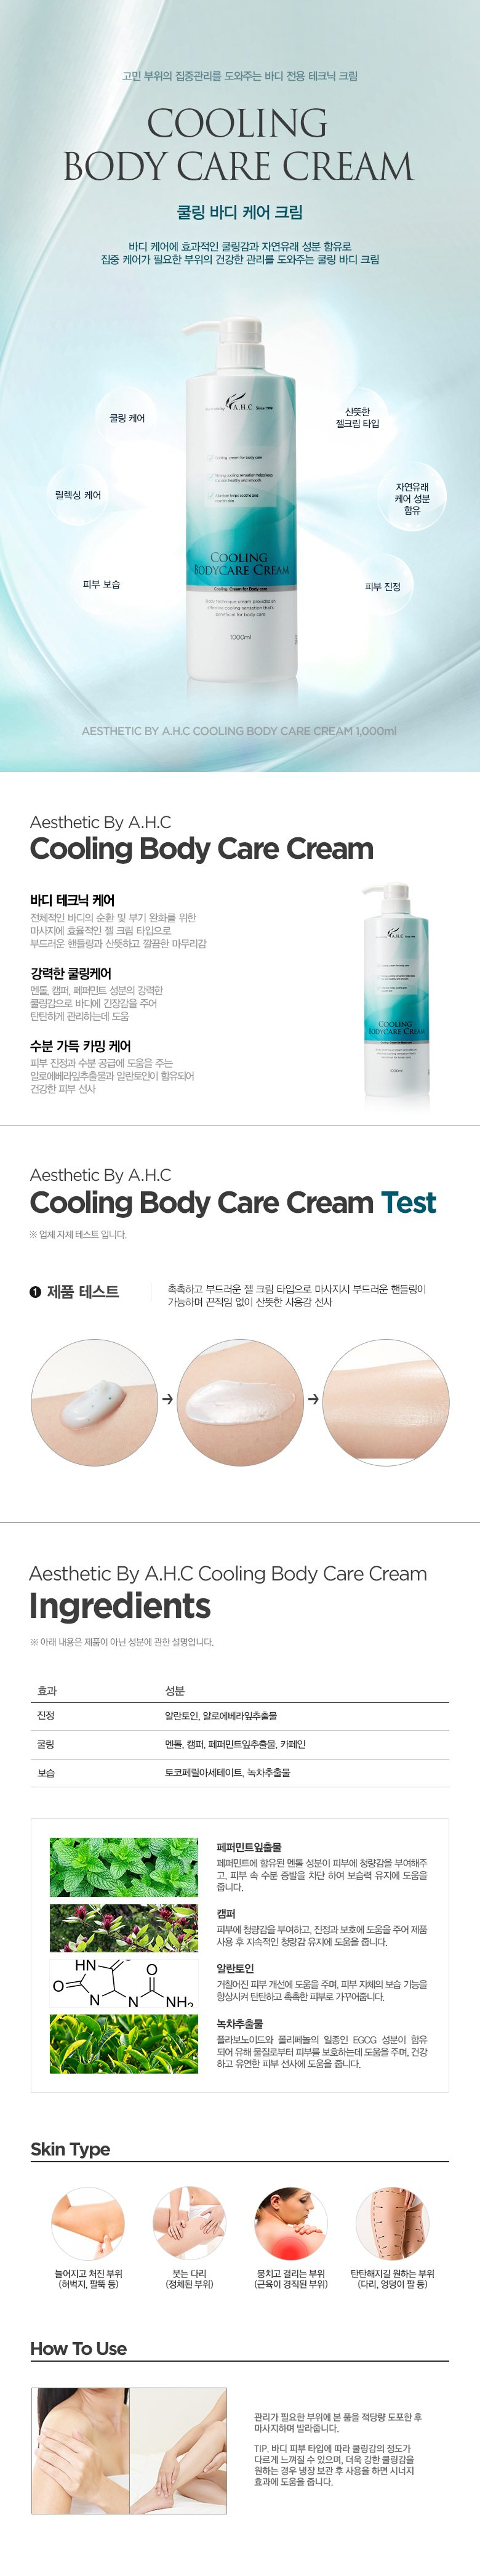 AHC Cooling Body Care Cream 1000ml malaysia singapore indonesia